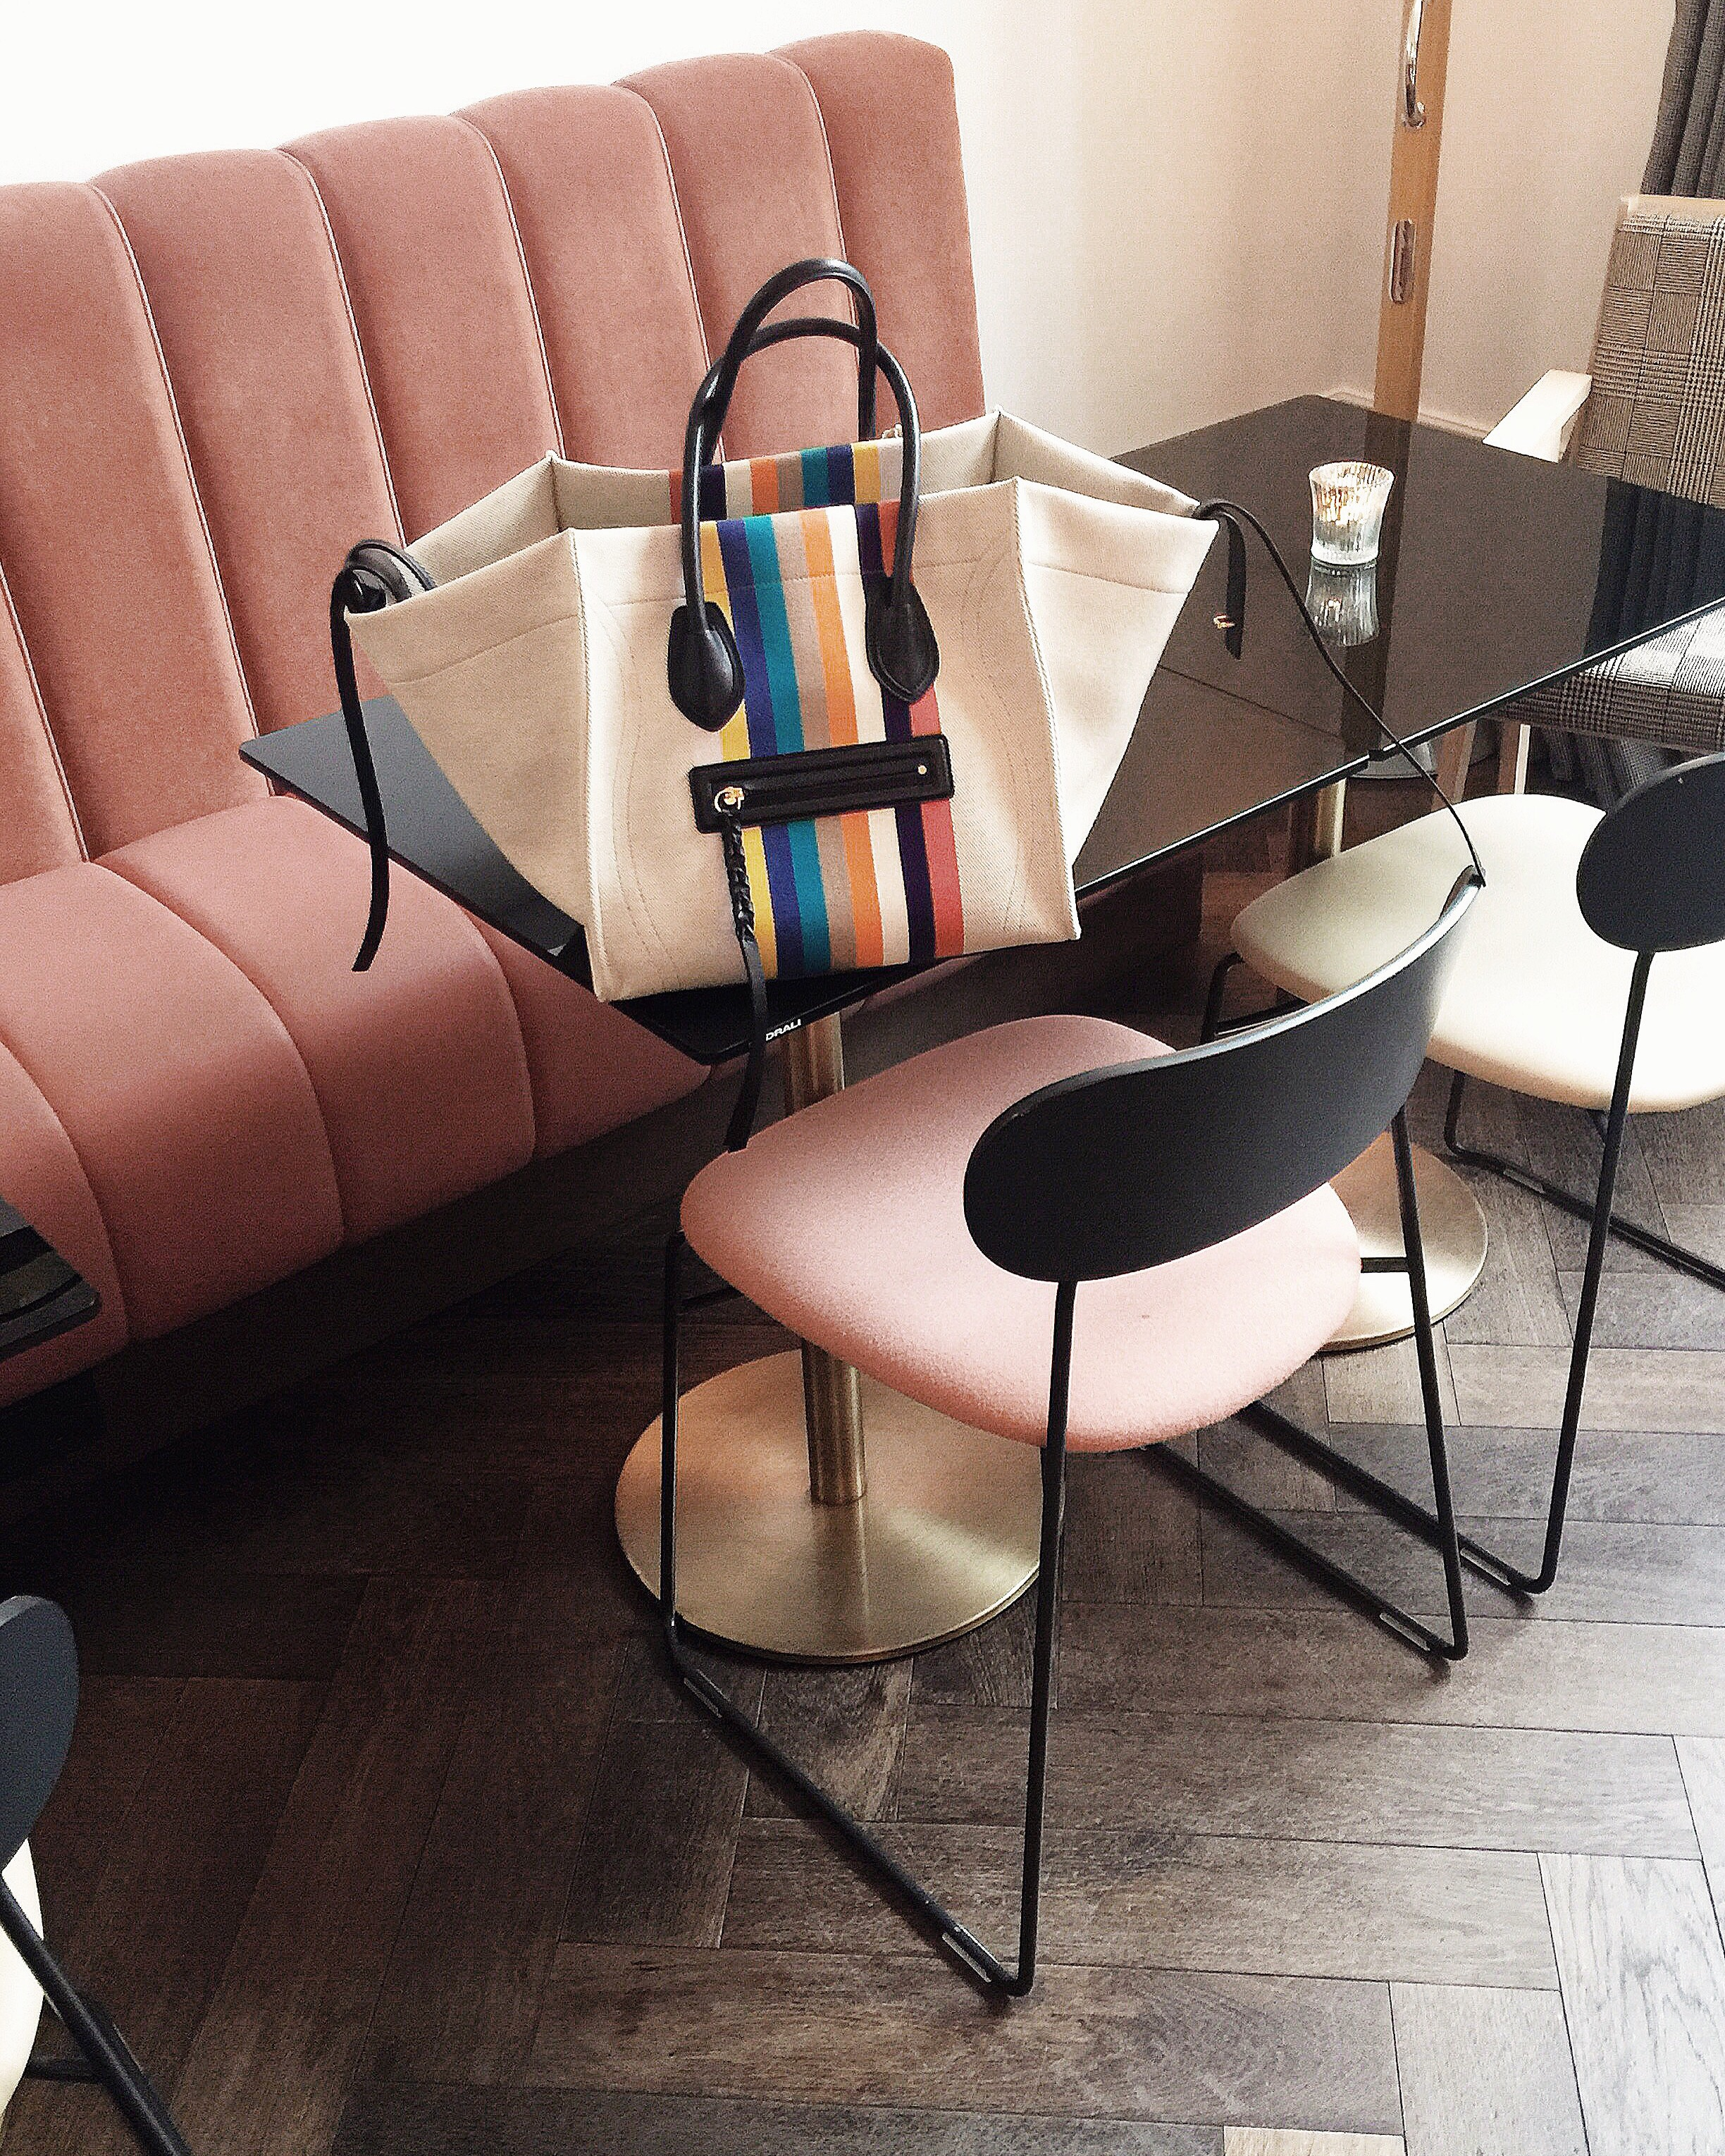 the laslett in notting hill and my fave celine